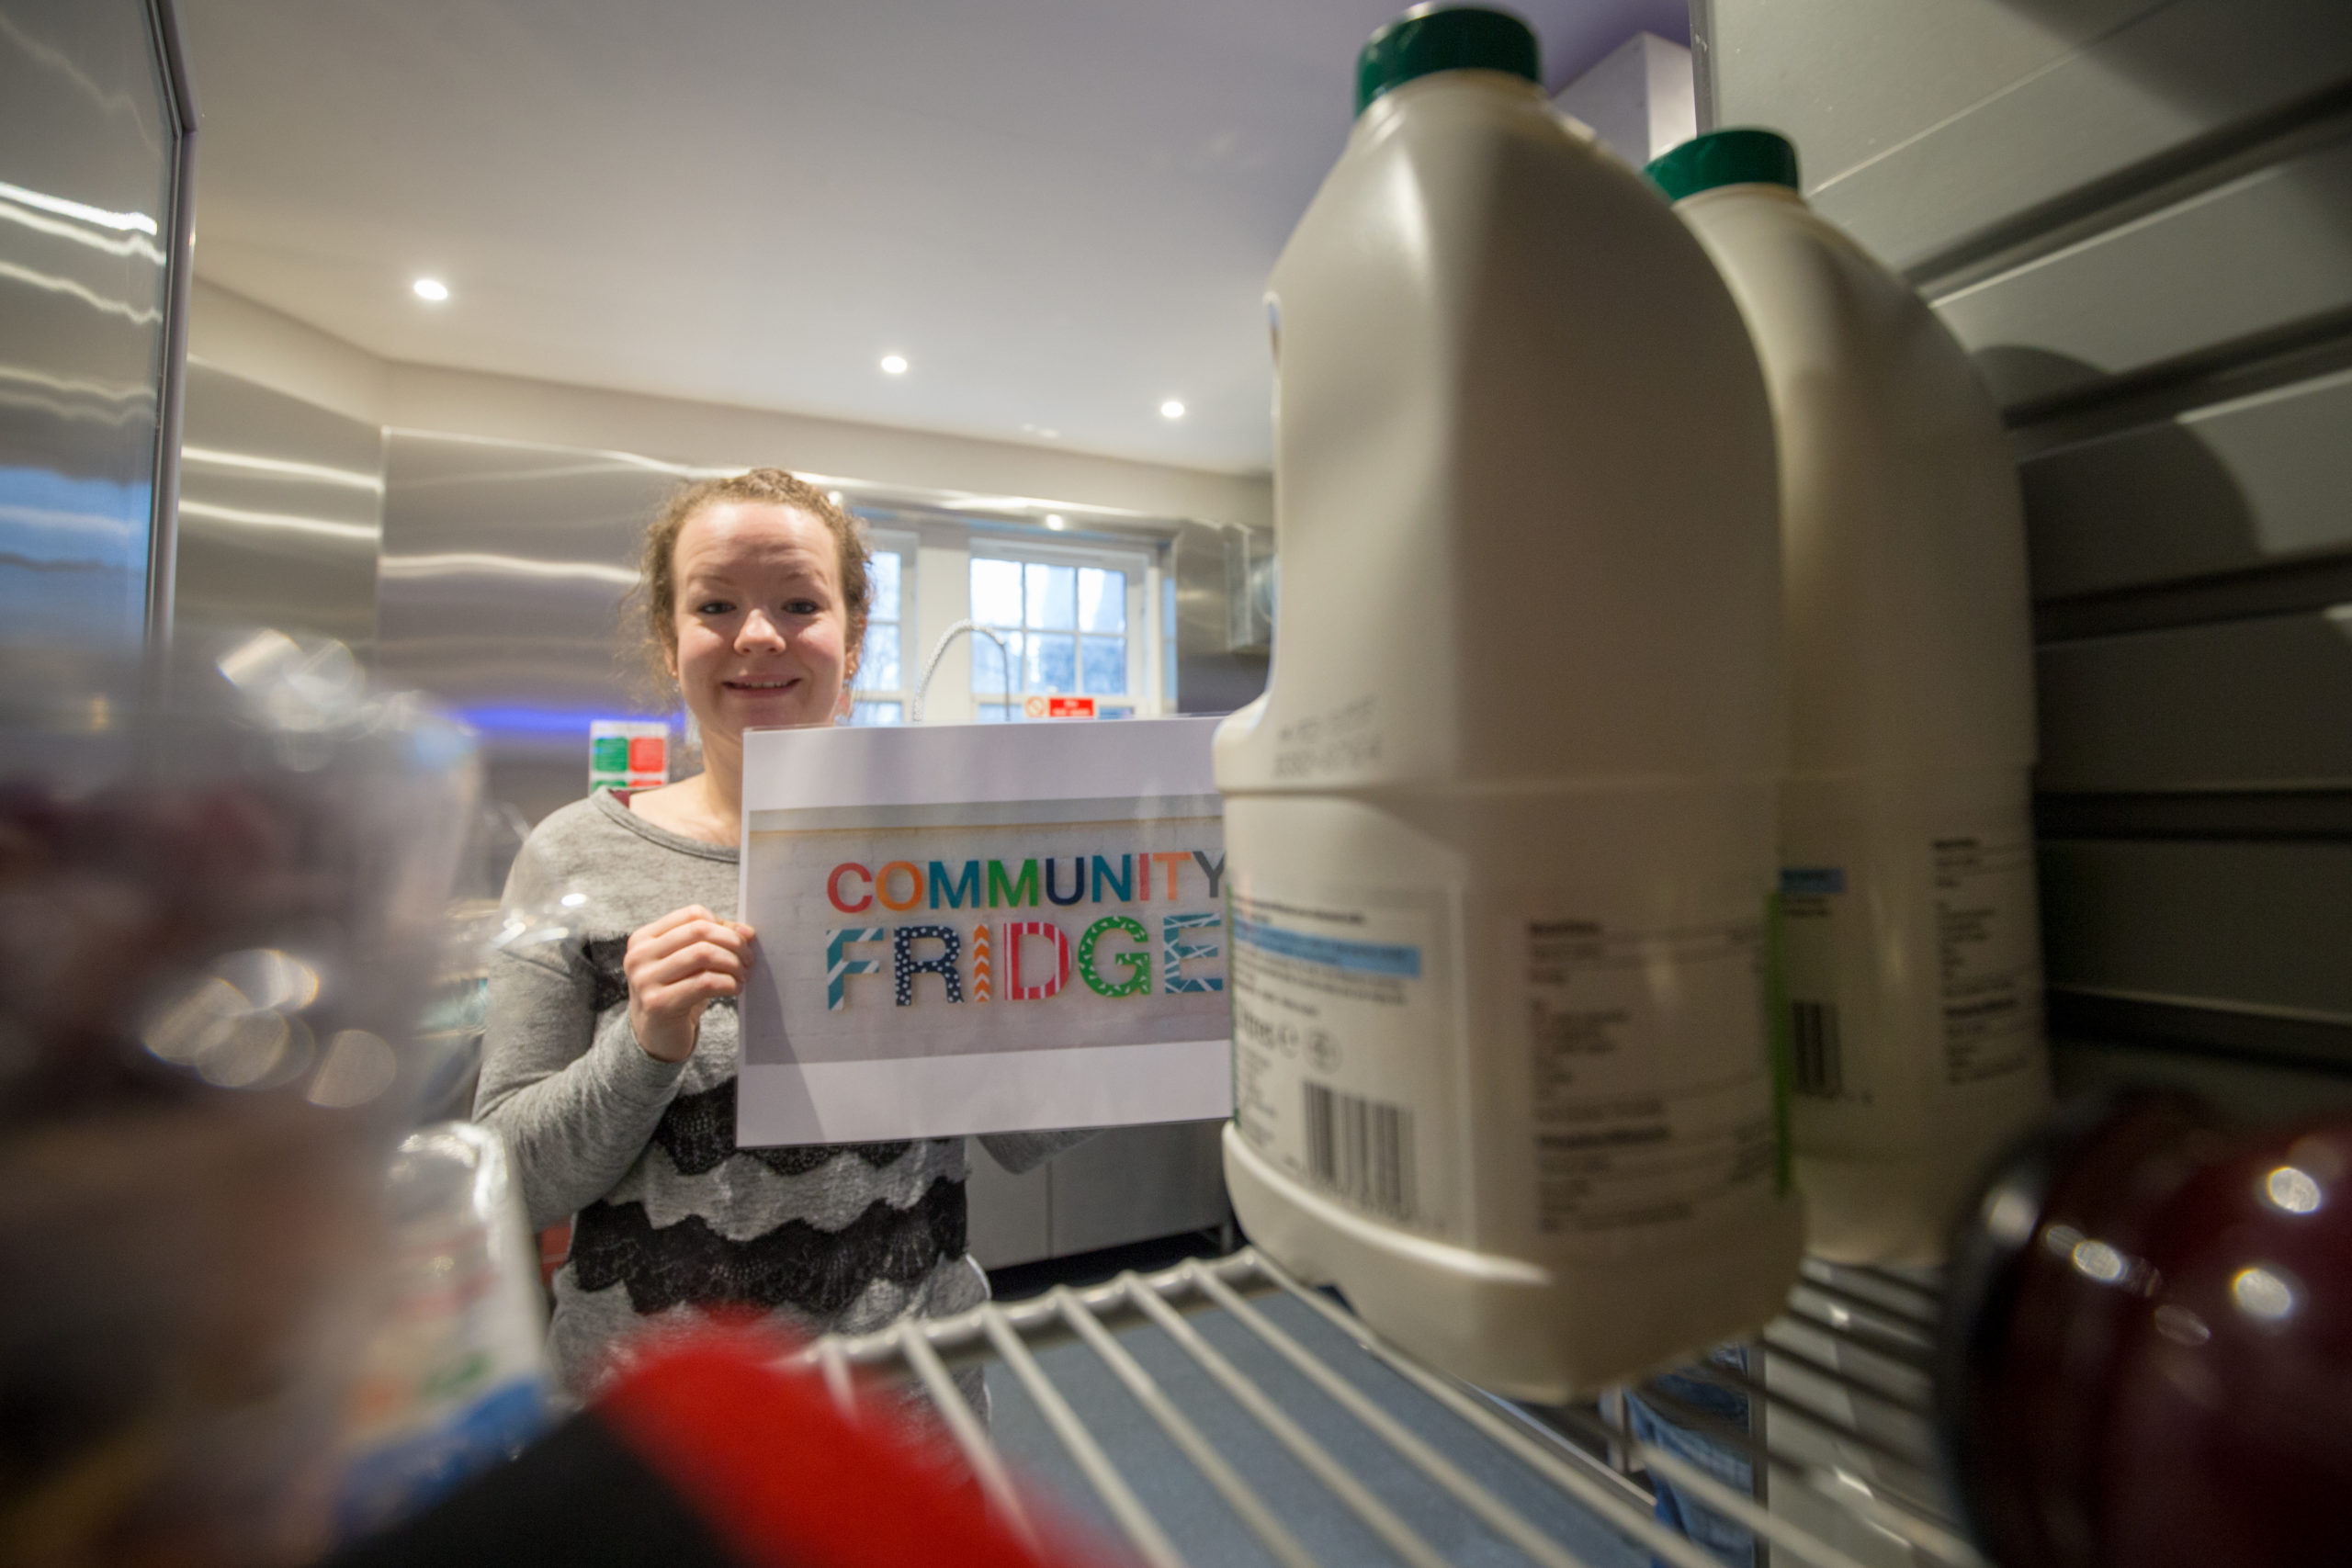 Lynsey Penny of the Gate Church Community Fridge Project.